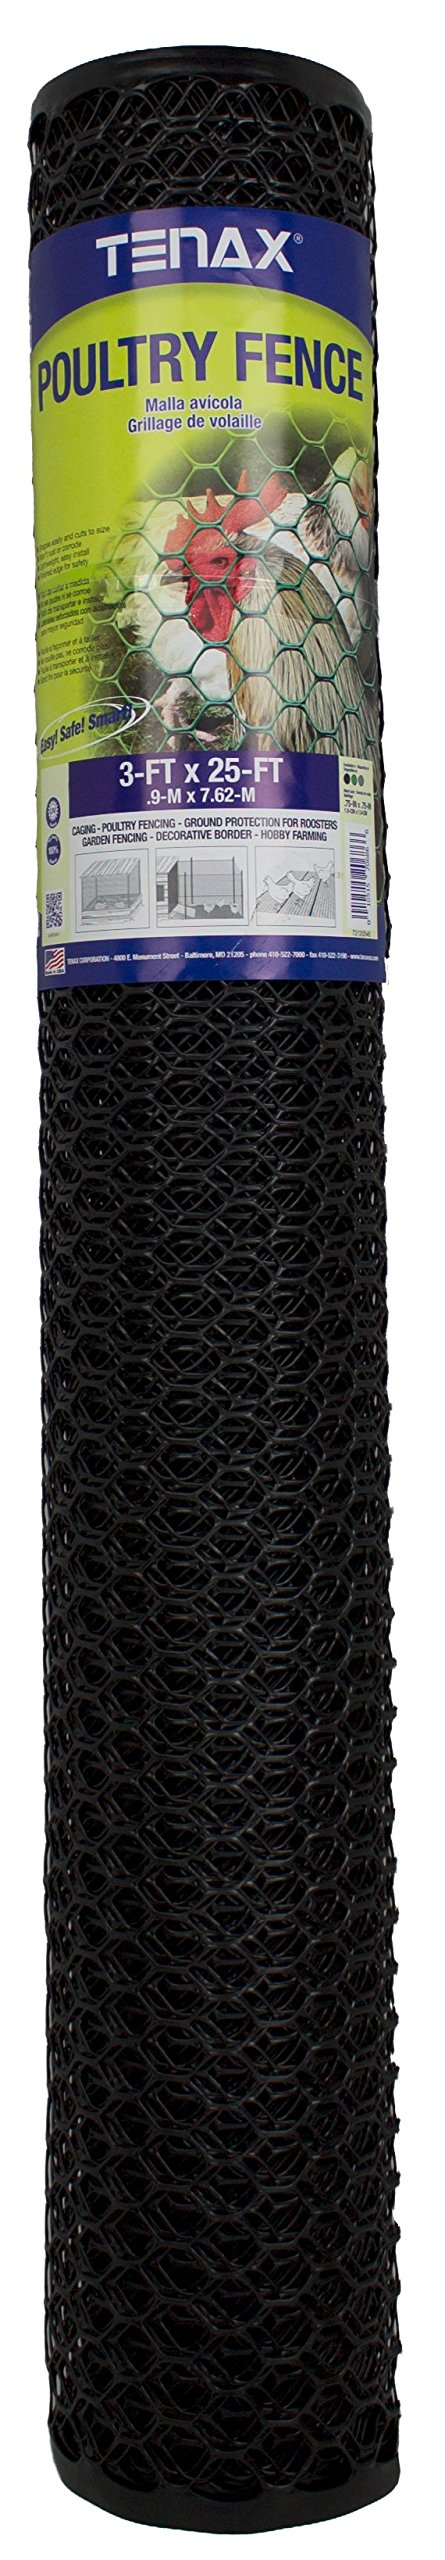 Tenax Poultry Fence, 3 by 25-Feet, Black